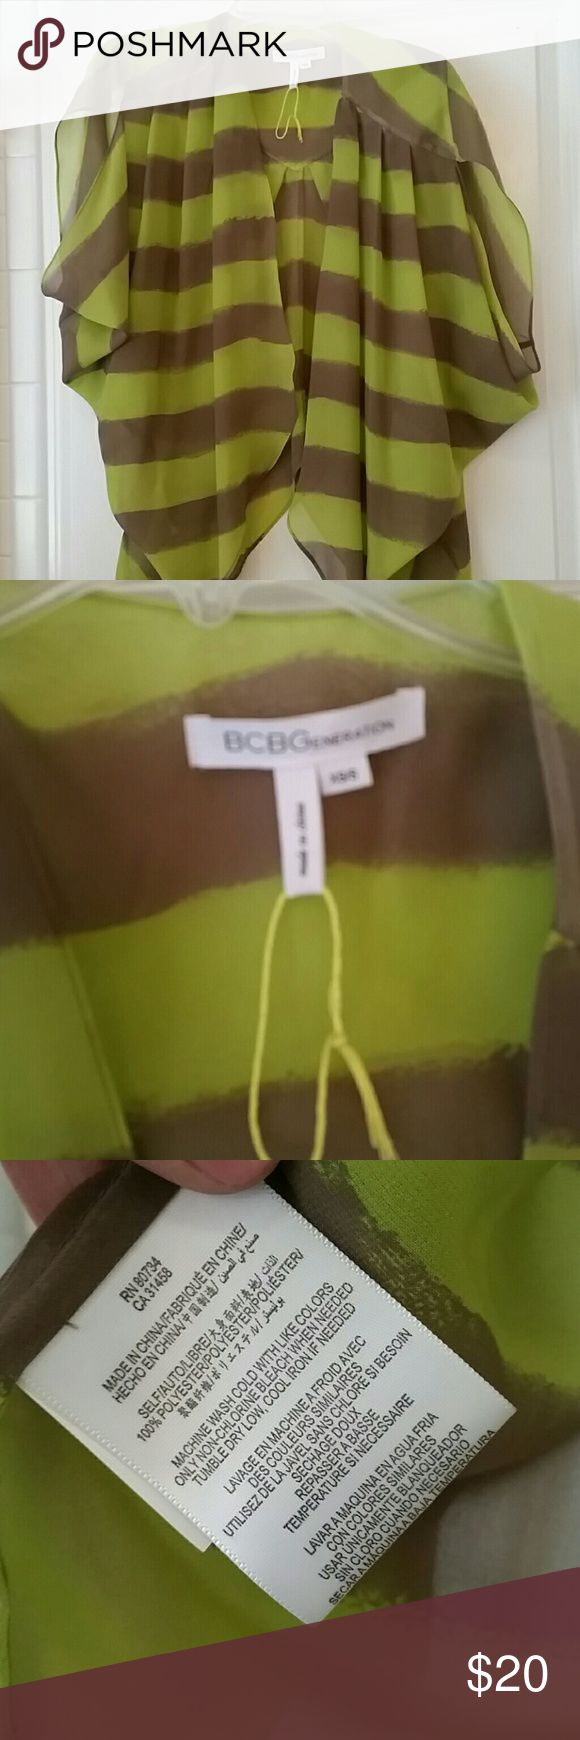 BCBGeneration Top Loose fitting gorgeous top. Worn once, excellent coition no tears no stains. BCBGeneration Tops